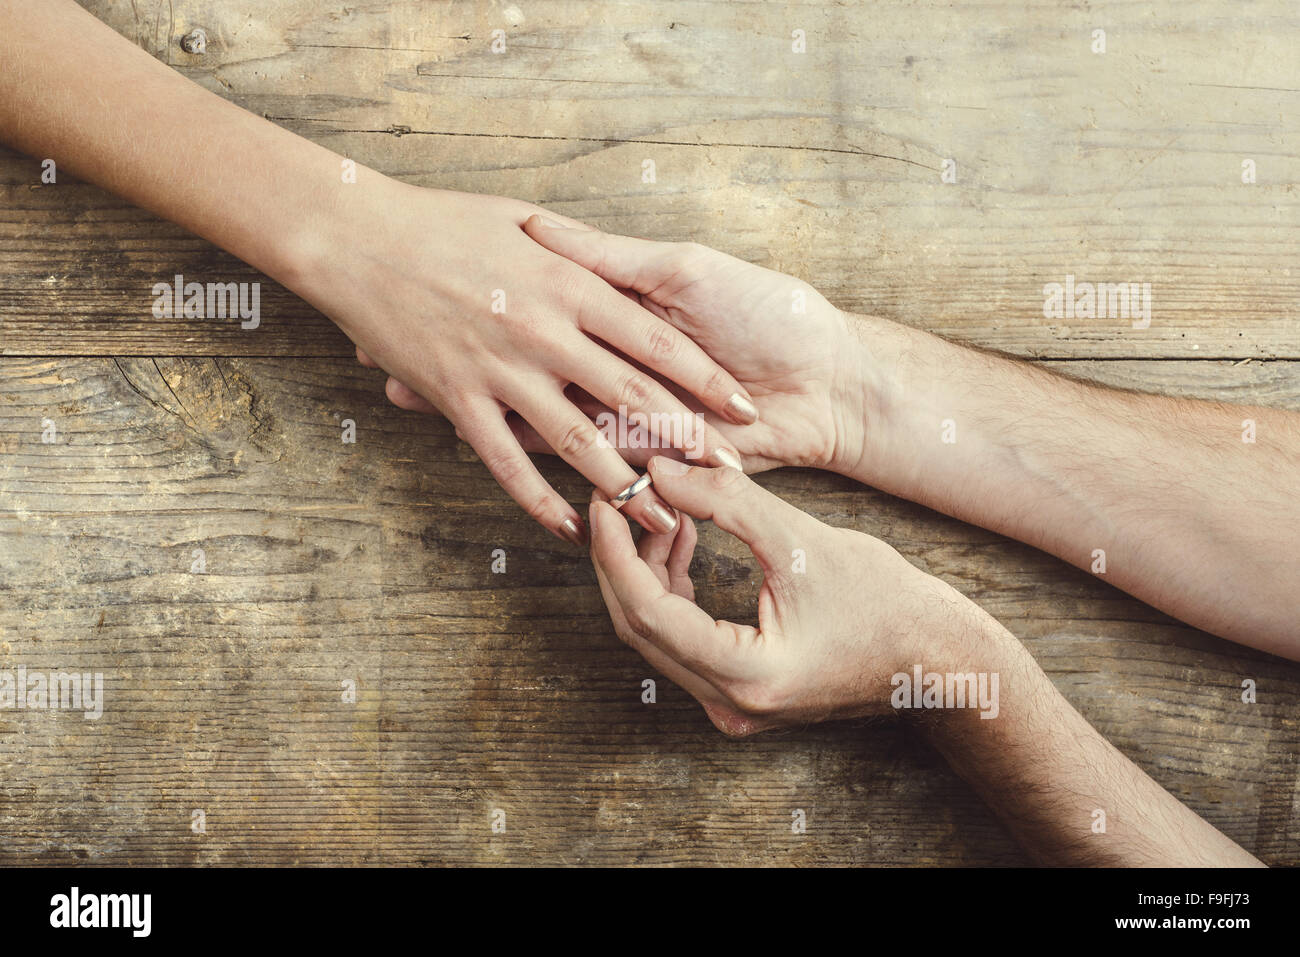 Man putting on engagement ring tenderly to his woman. Studio shot on a wooden background, view from above. Stock Photo